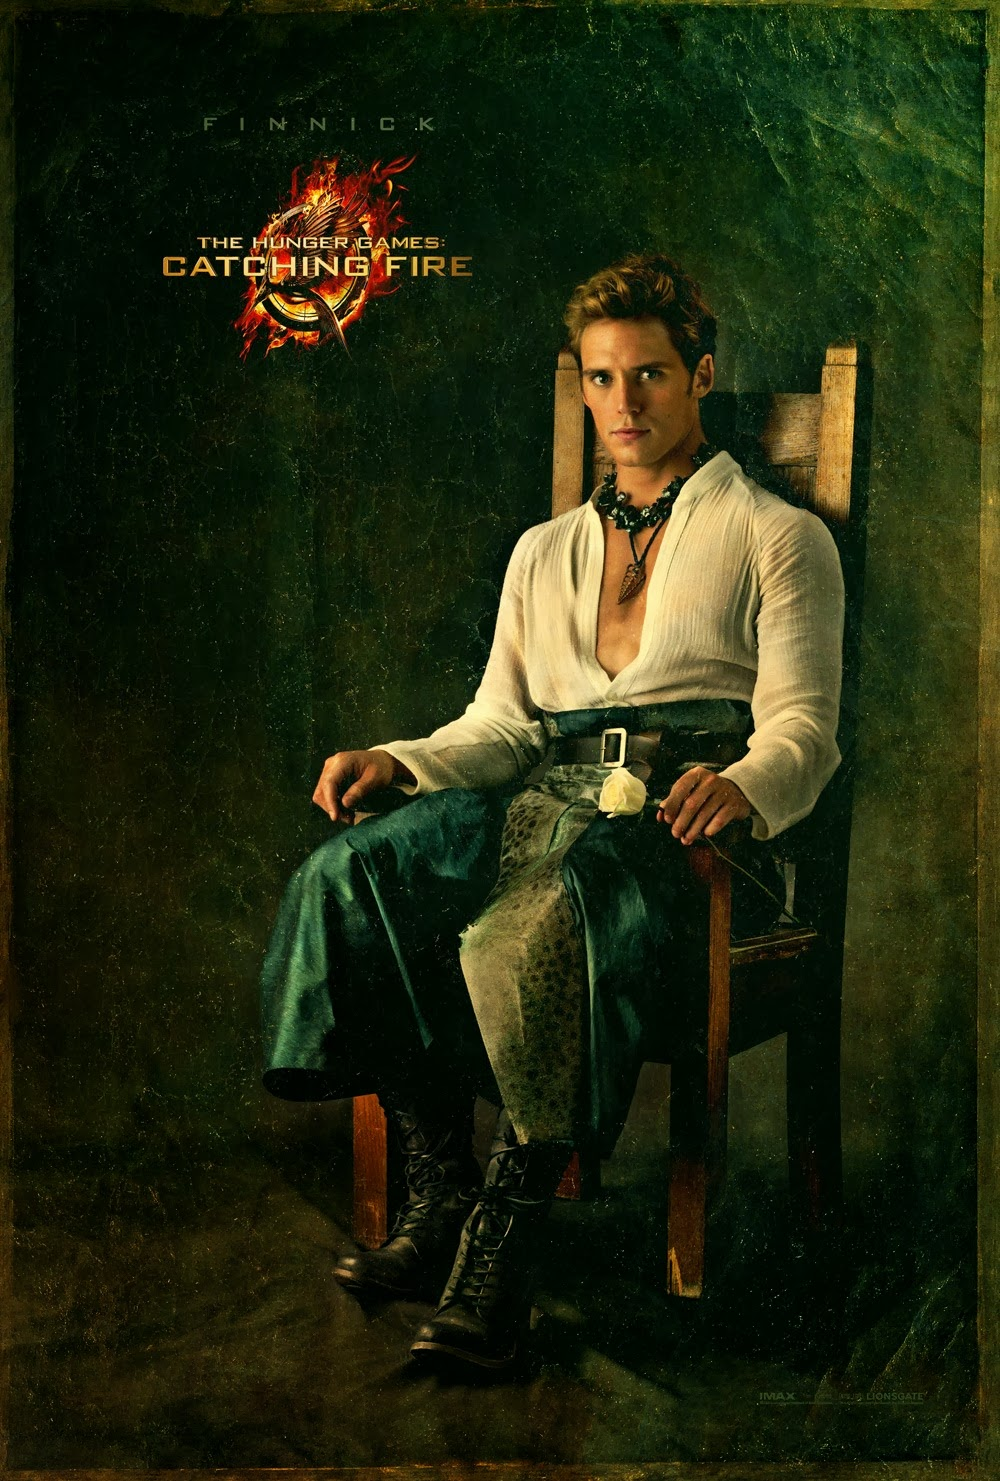 Leapbackblog Movies Tv Games Music And Whatever The Hunger Games Catching Fire 2013 Review